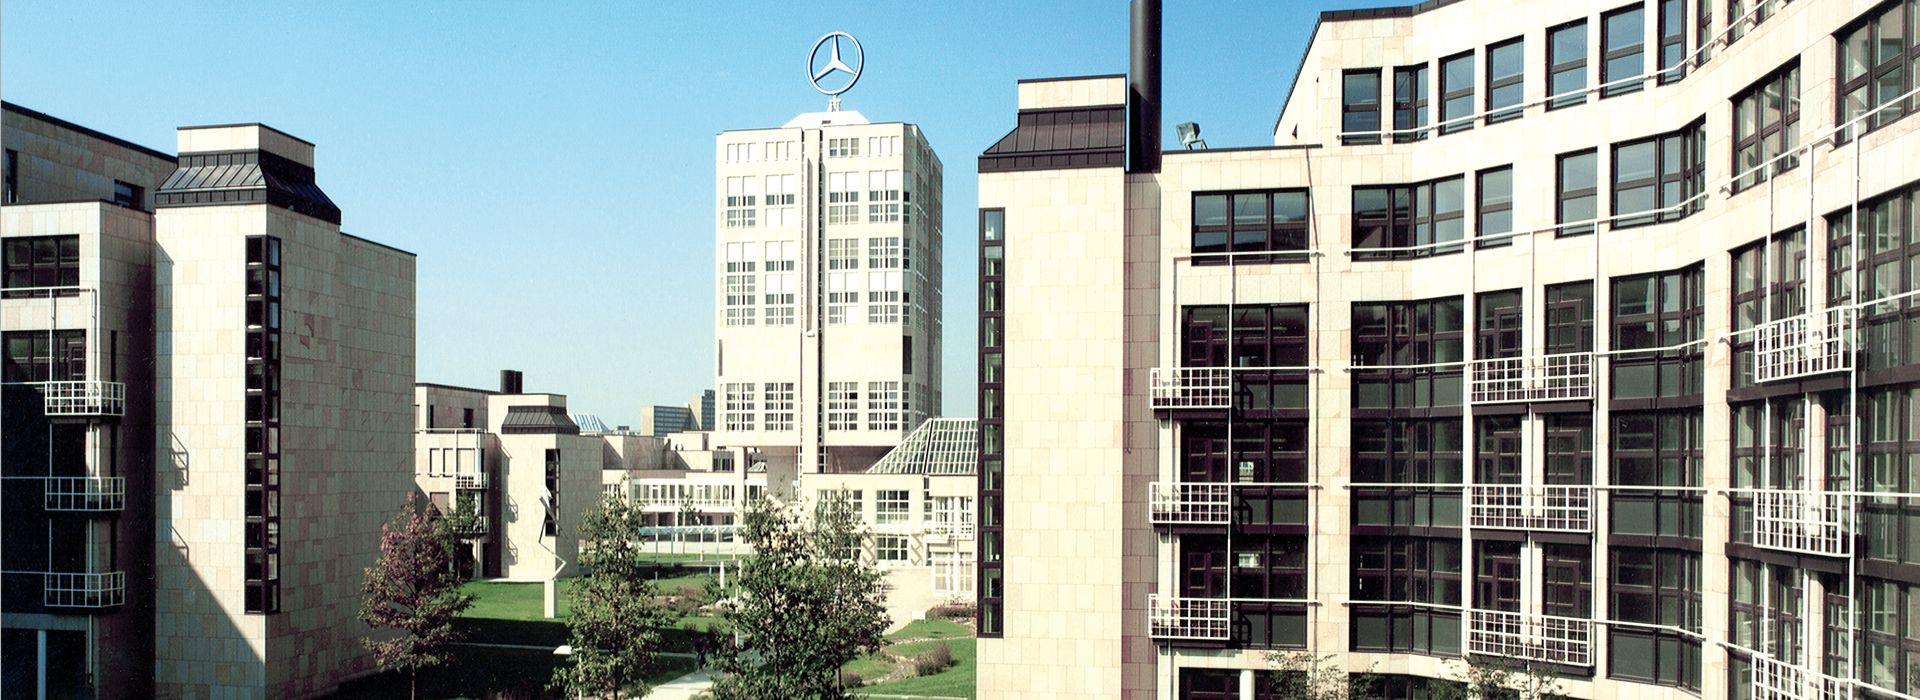 Daimler Headquarters, Stuttgart / Germany